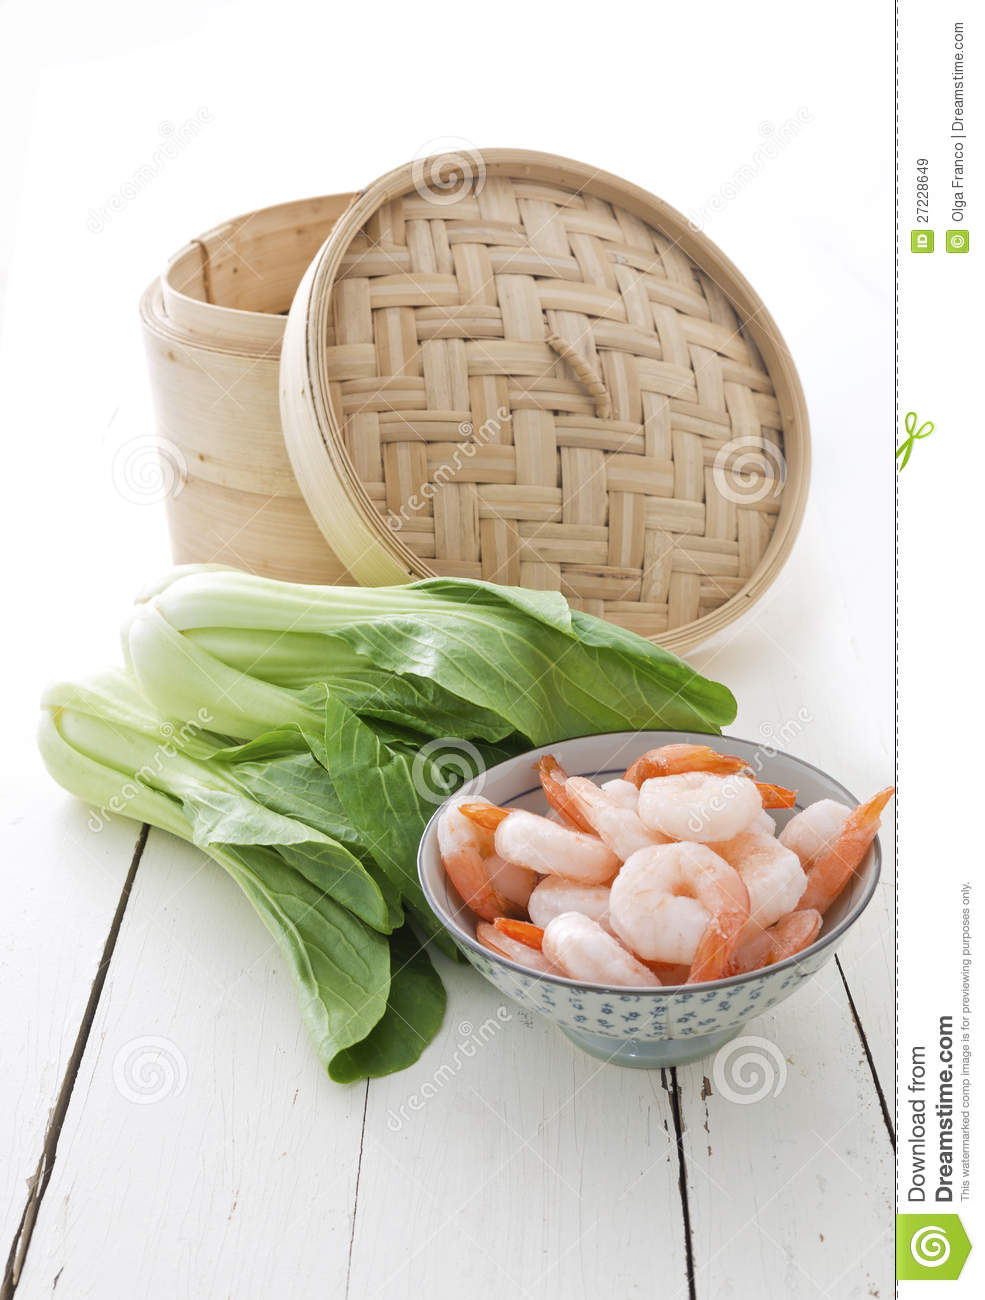 Bamboo steamer, bok choy and prawns